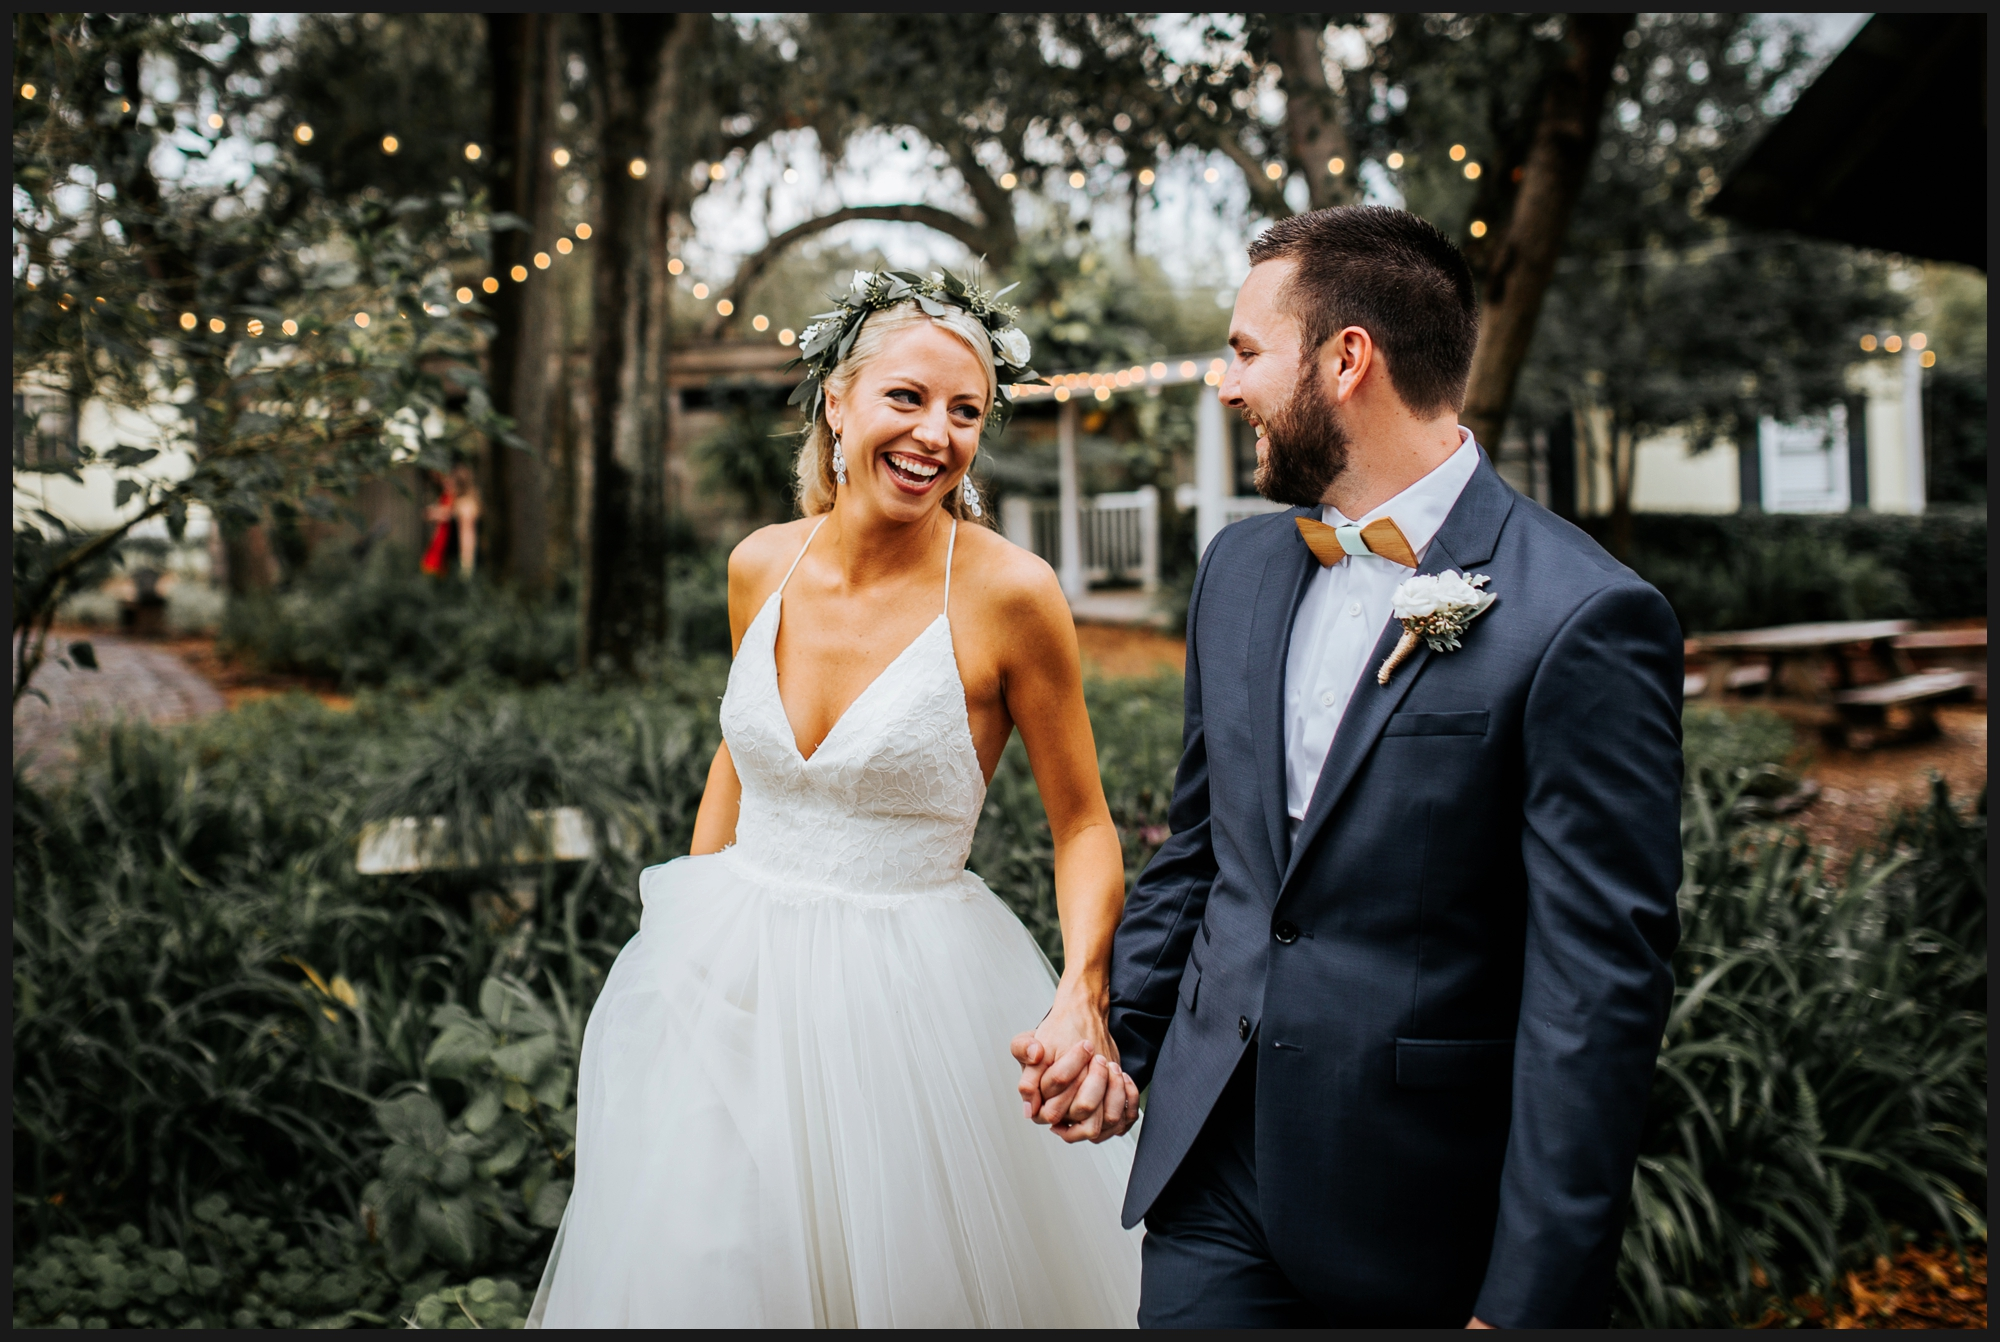 OrlandoWeddingPhotographerMattSierra_0067.jpg